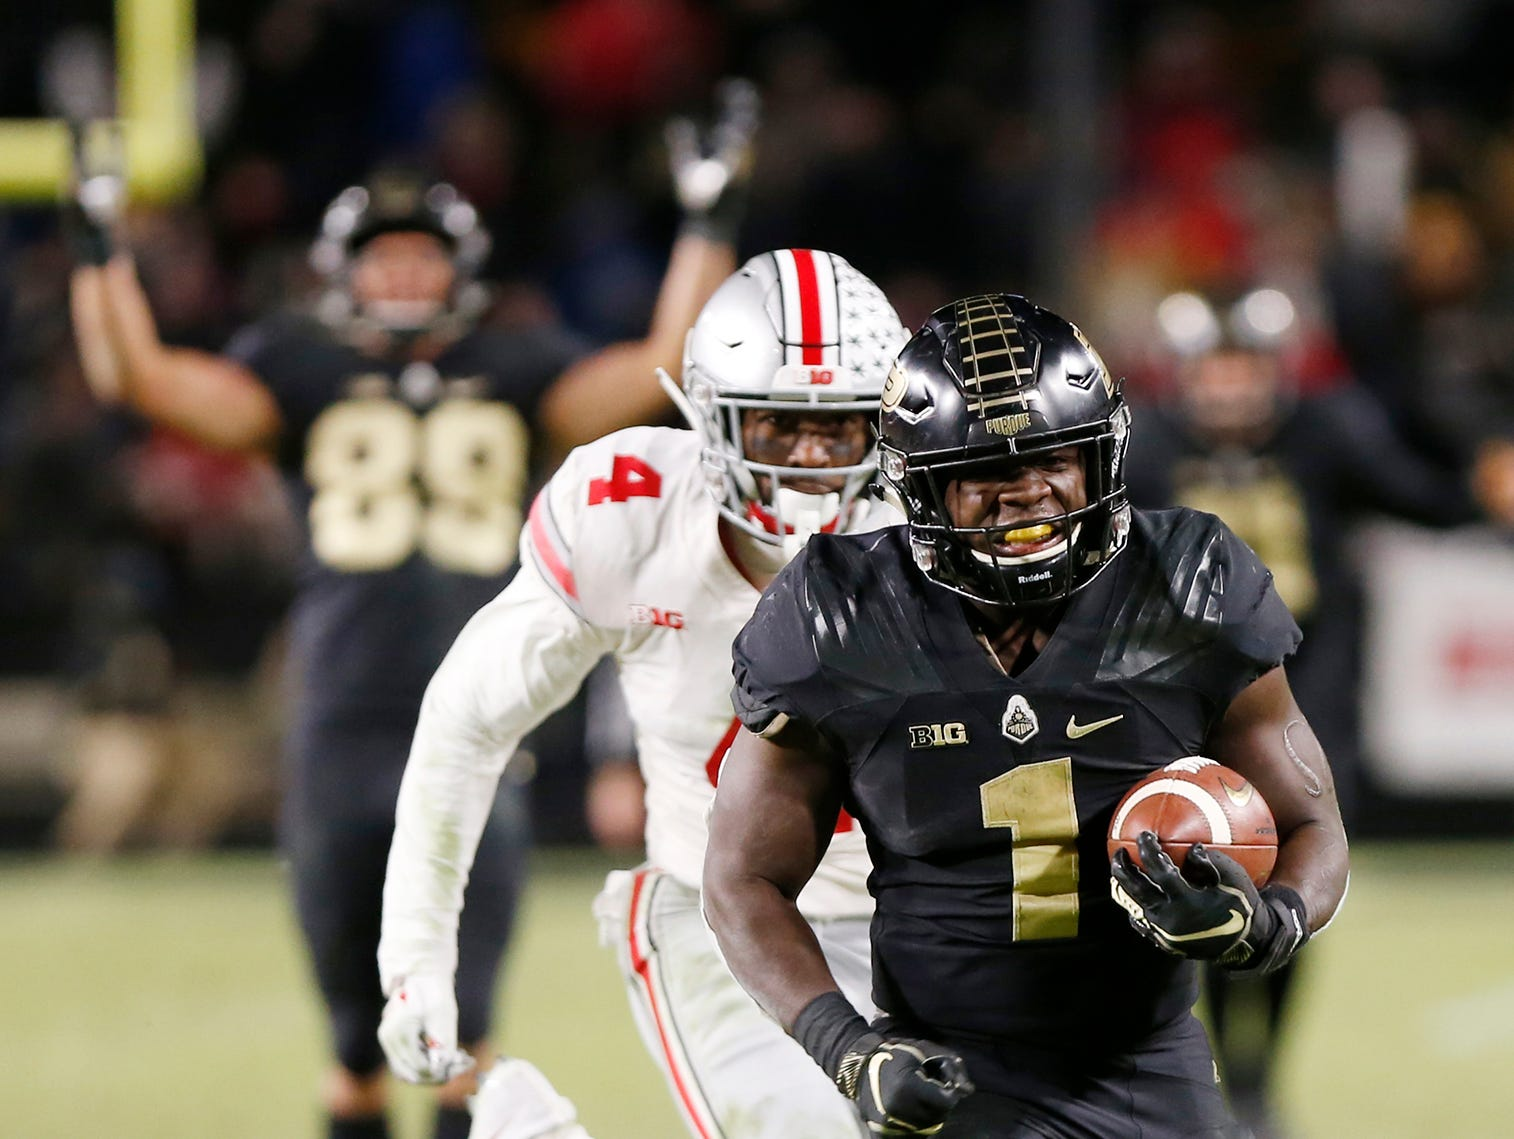 D. J. Knox of Purdue breaks free for a touchdown in the fourth quarter against Ohio State Saturday, October 20, 2018, at Ross-Ade Stadium. Purdue upset the No. 2 ranked Buckeyes 49-20.